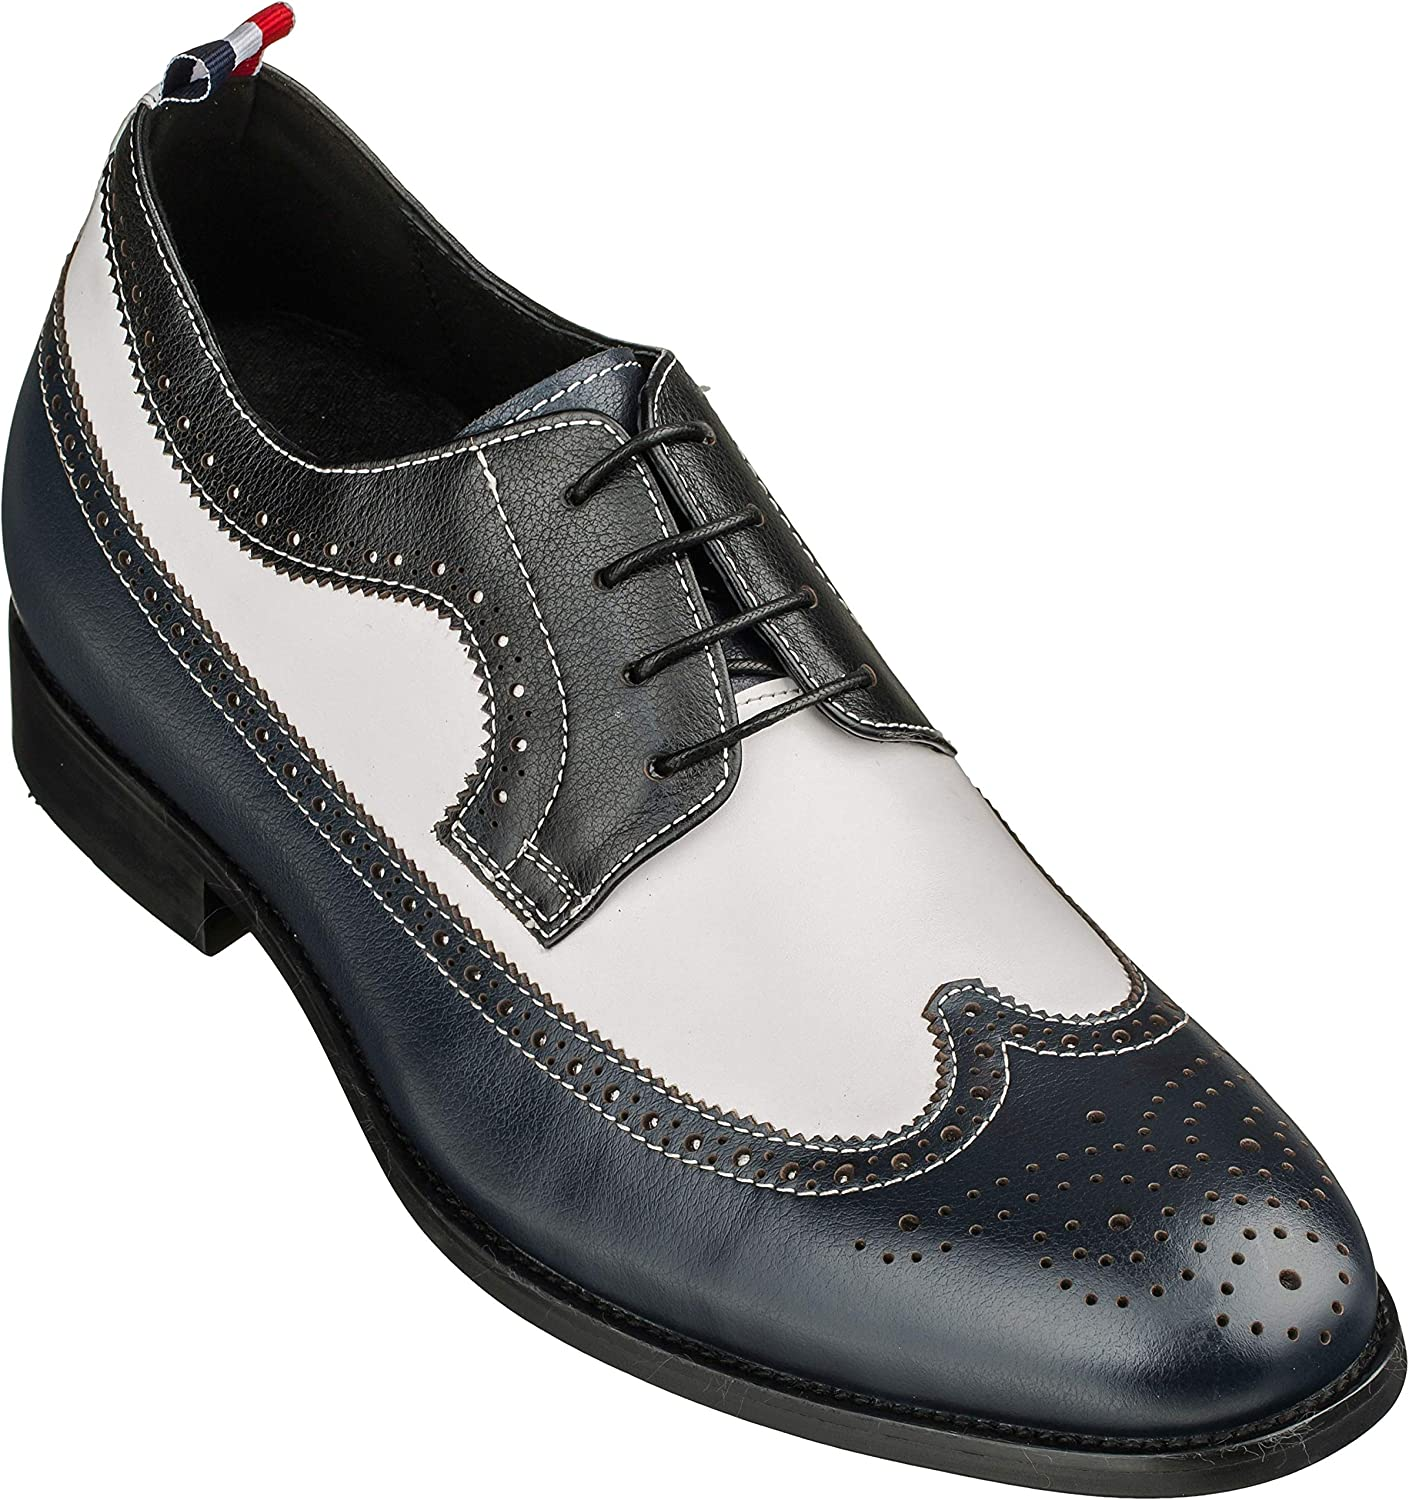 CALTO Men's Invisible Height Increasing Wh Elevator SALENEW very half popular Navy Shoes -